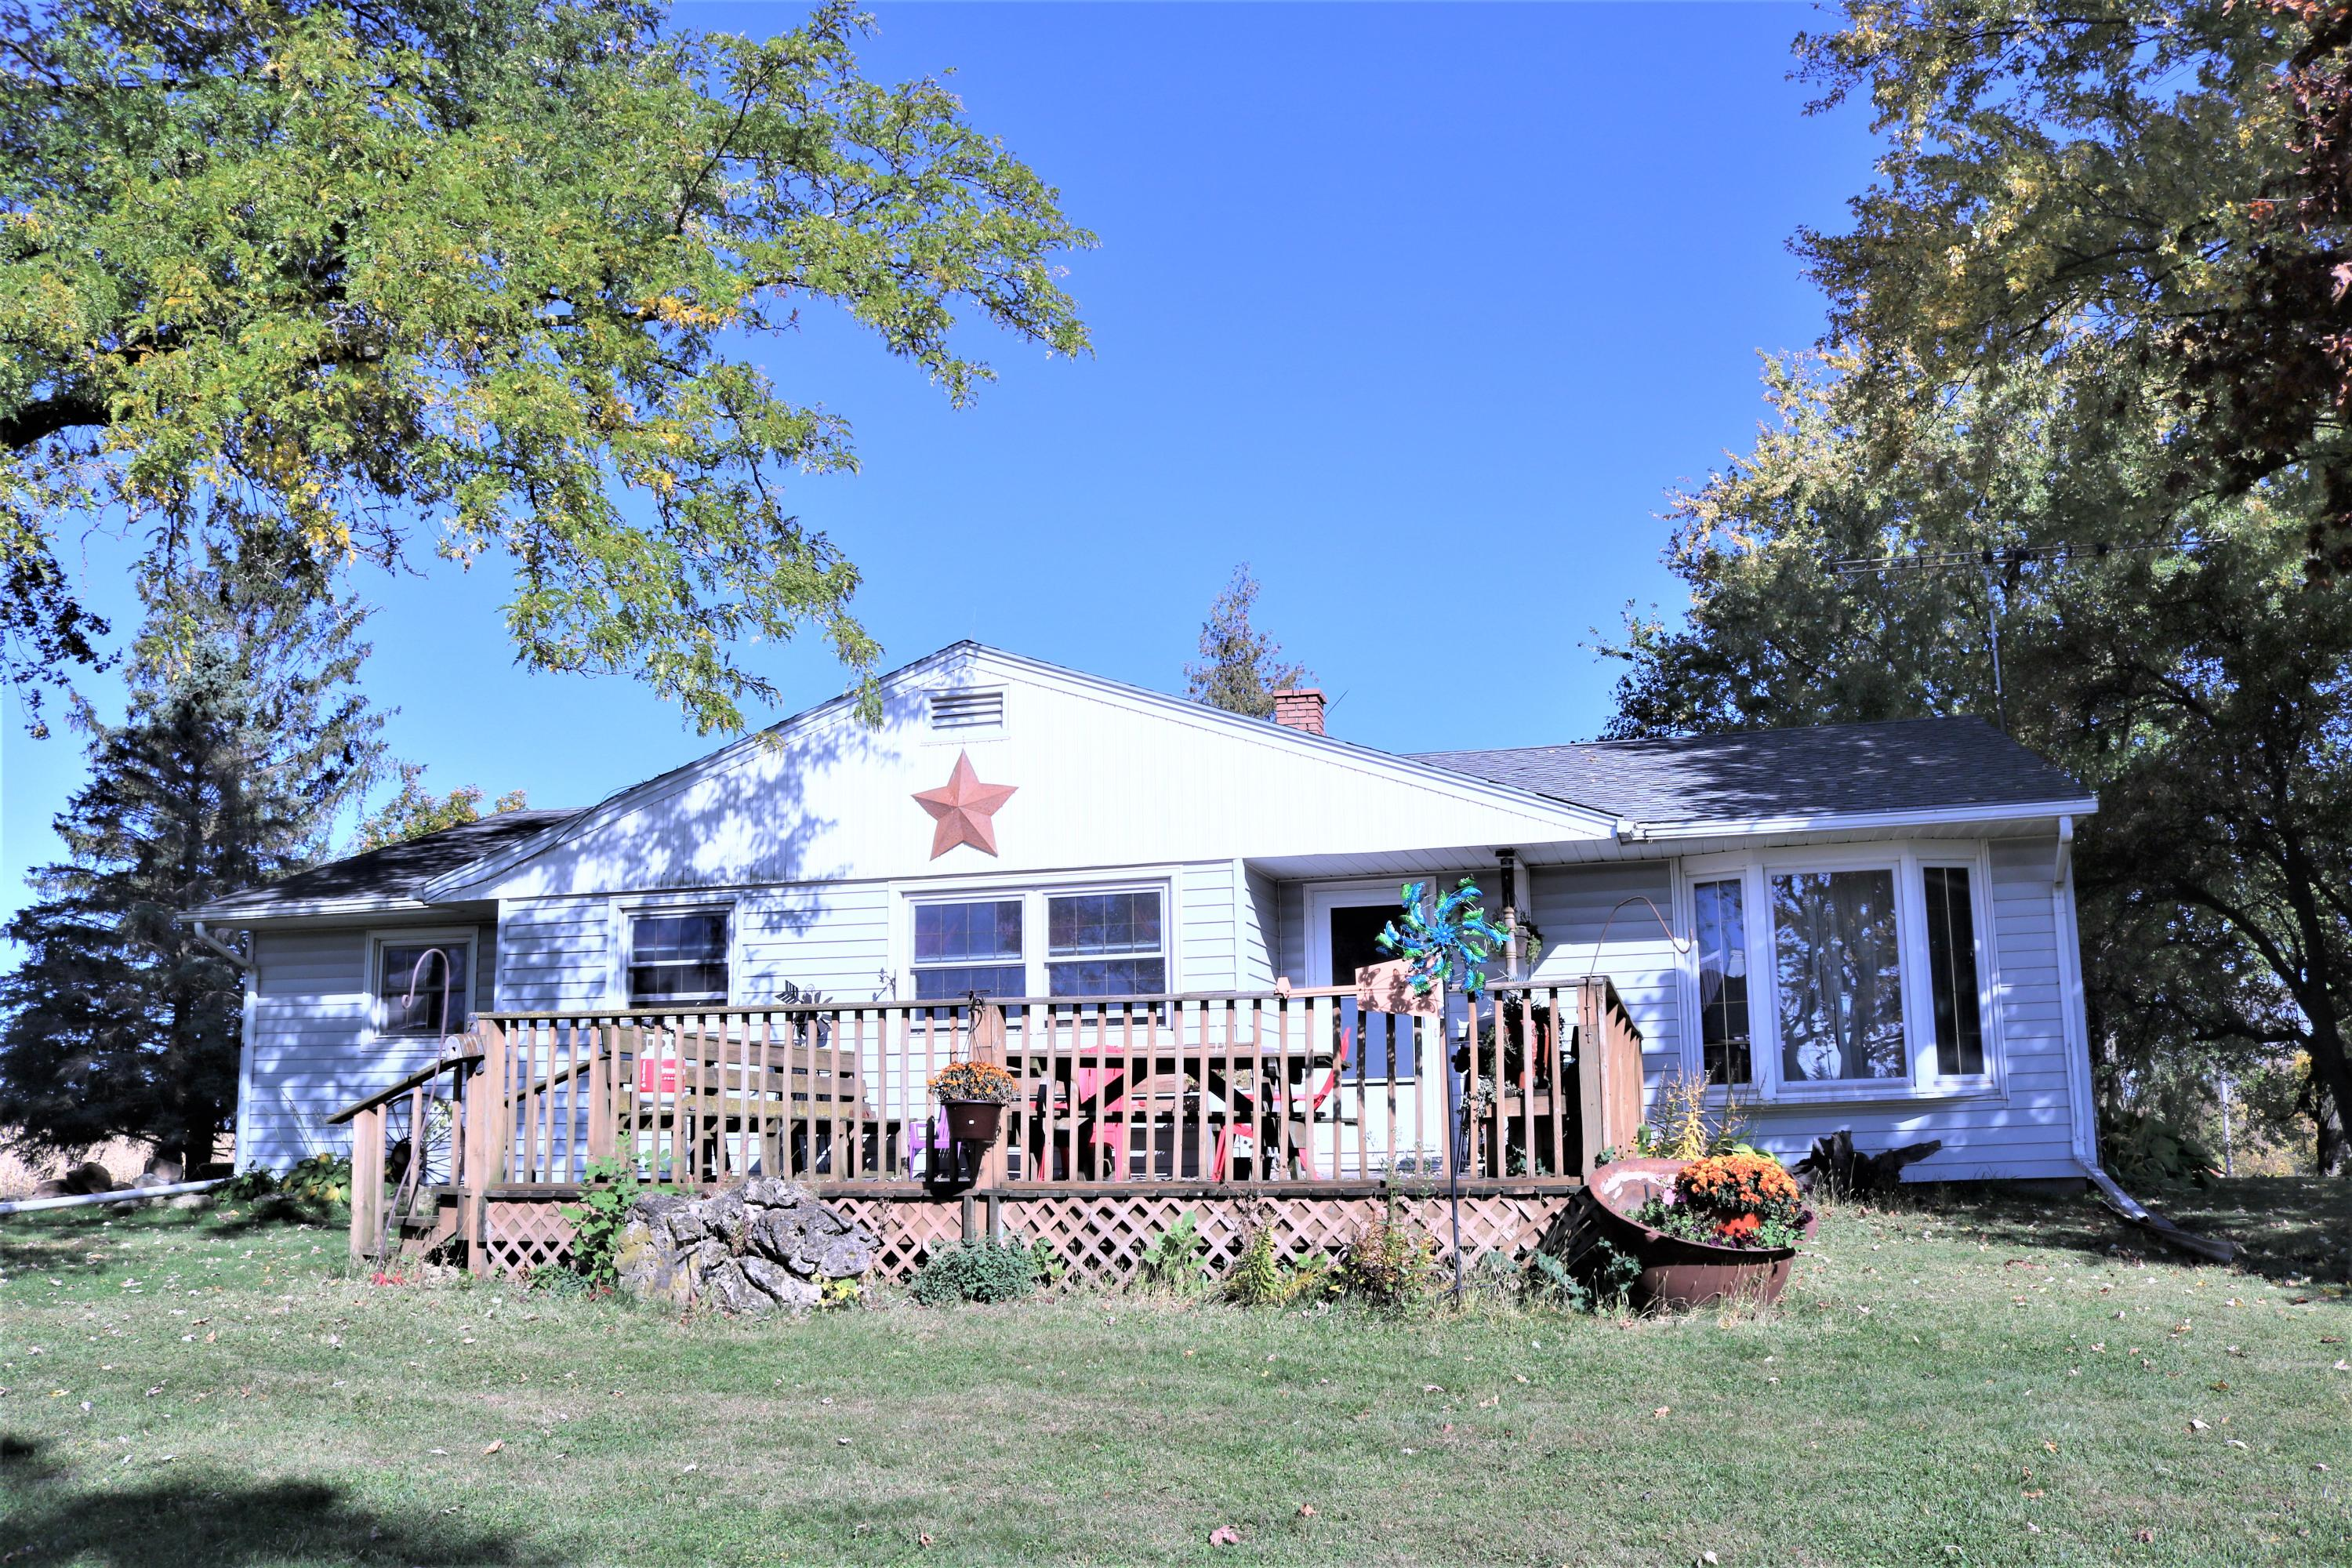 Rural, ridge-top farmette! Home is a 2-3 bdrm, 1.5 bath stick-built ranch with full basement. Large office could be used as a bedroom or home-based business. Many outbuildings including a 2-car detached garage, L-shape barn 80' X 16' with a 56' X 35' wing, 2 28' X 80' sheds one metal and one wooden. 1 28' X56' shed. Currently used as a calf raising facility. The 10+/- acres consists of approximately 5 tillable (corn this year) and 2 fenced pasture. Bring your ideas and animals!